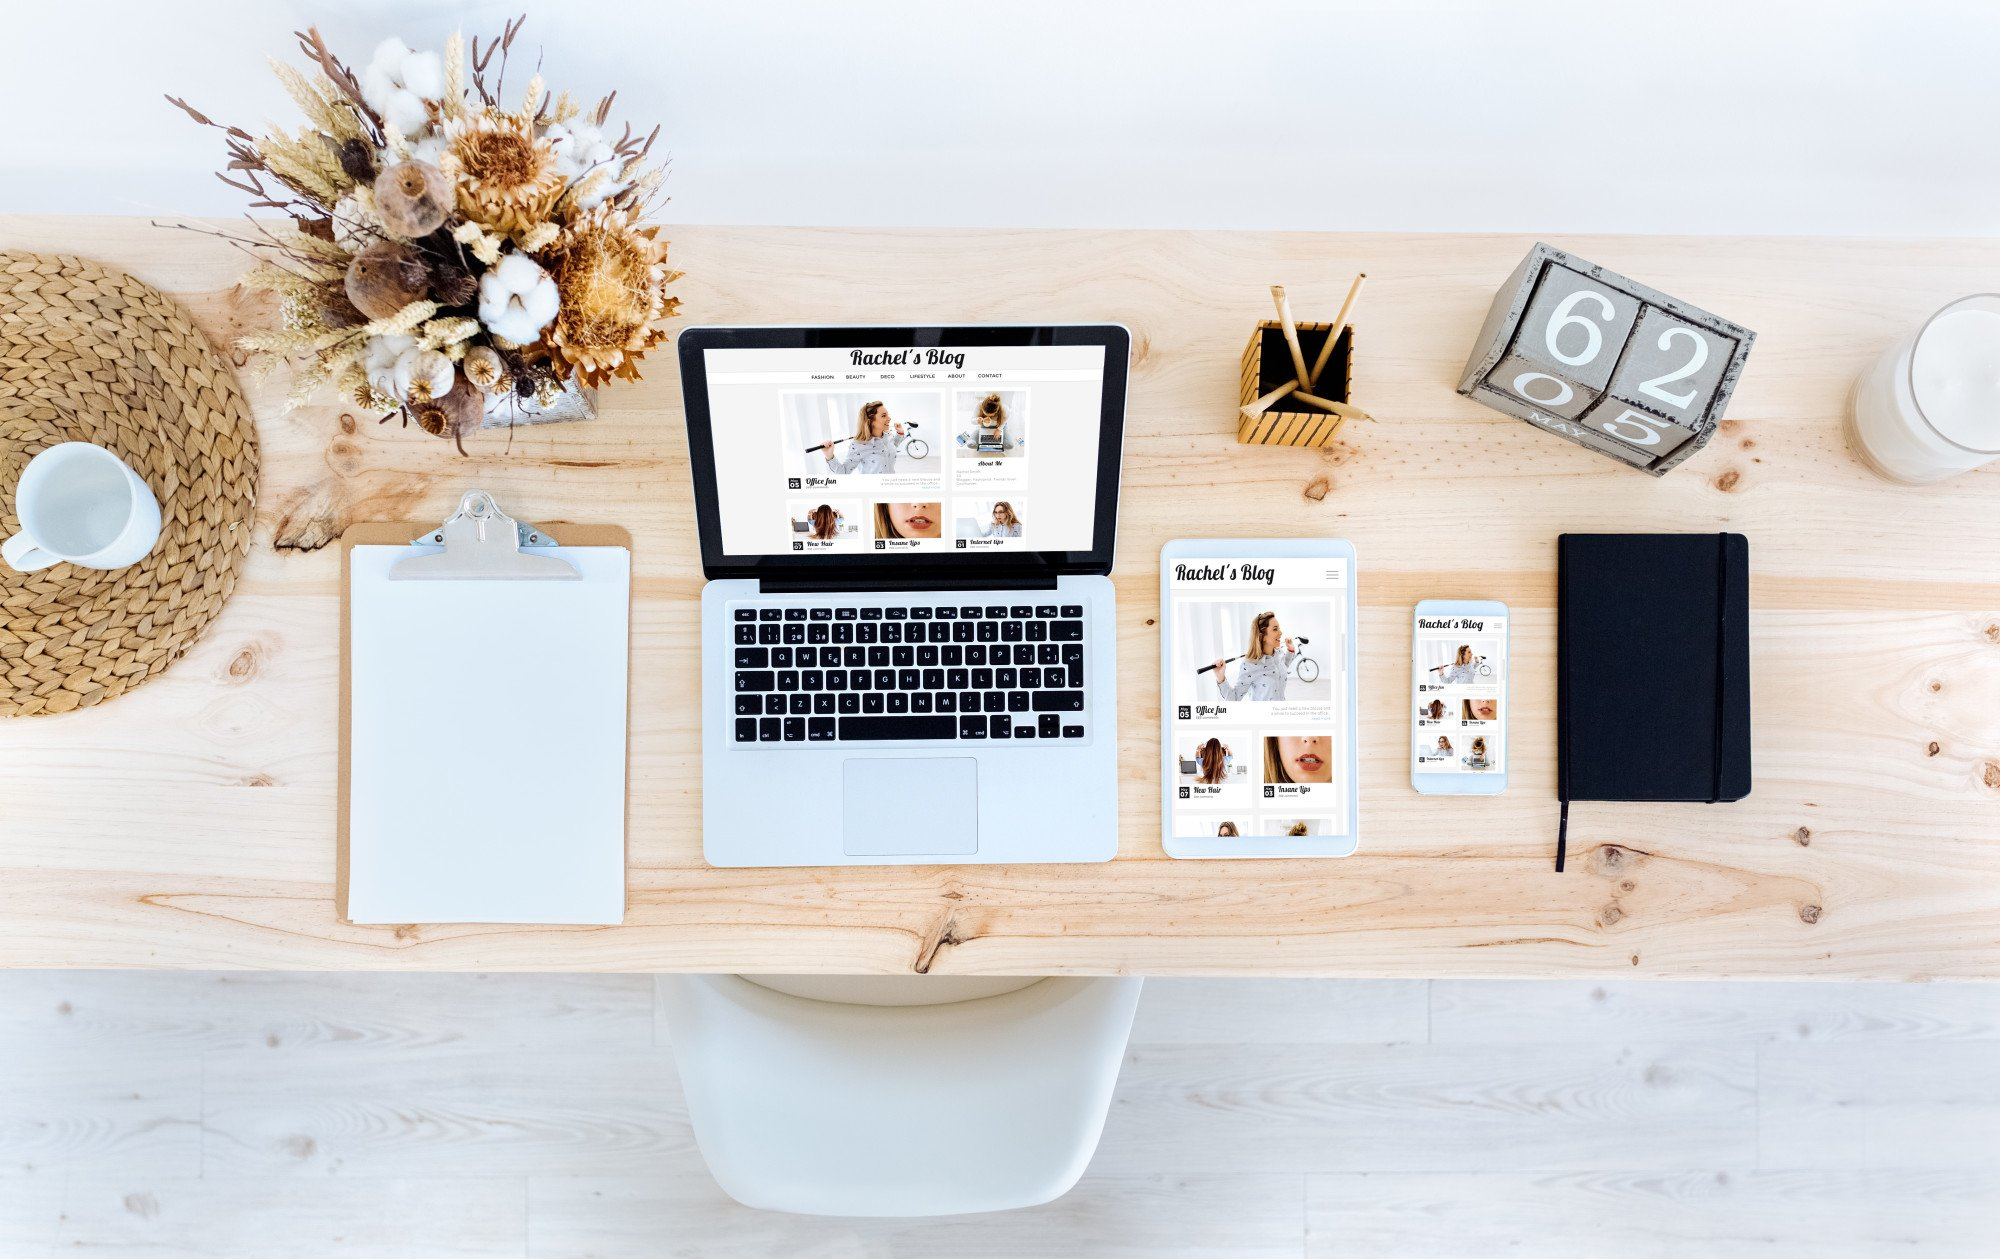 Laptop, tablet and smartphone on a desktop showing influencer girl blog.